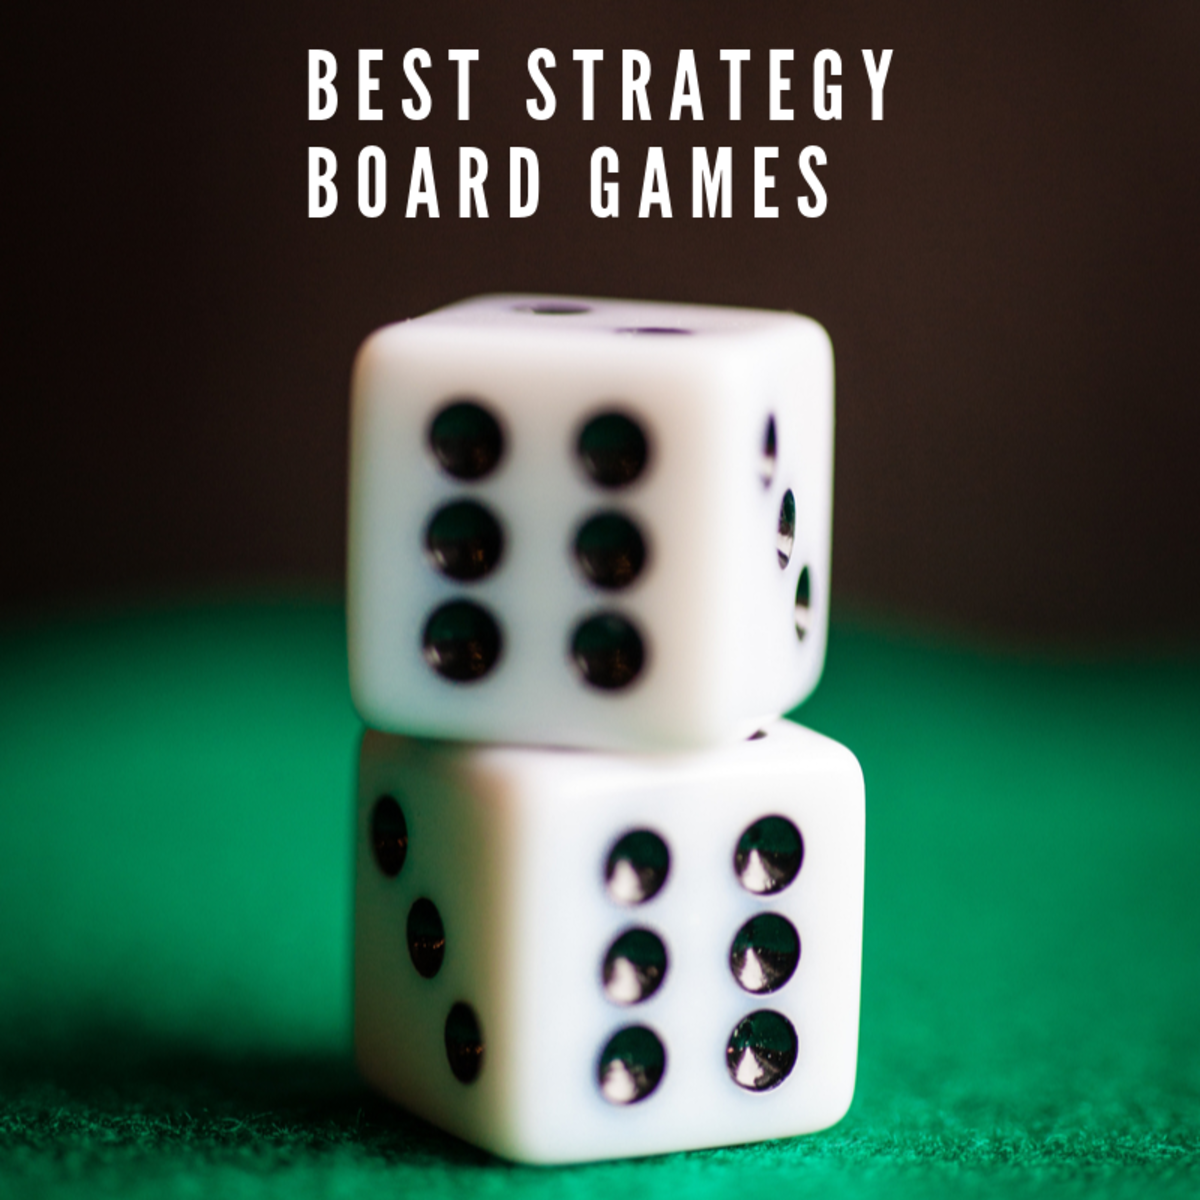 13 Best Strategy Board Games for Kids and Adults